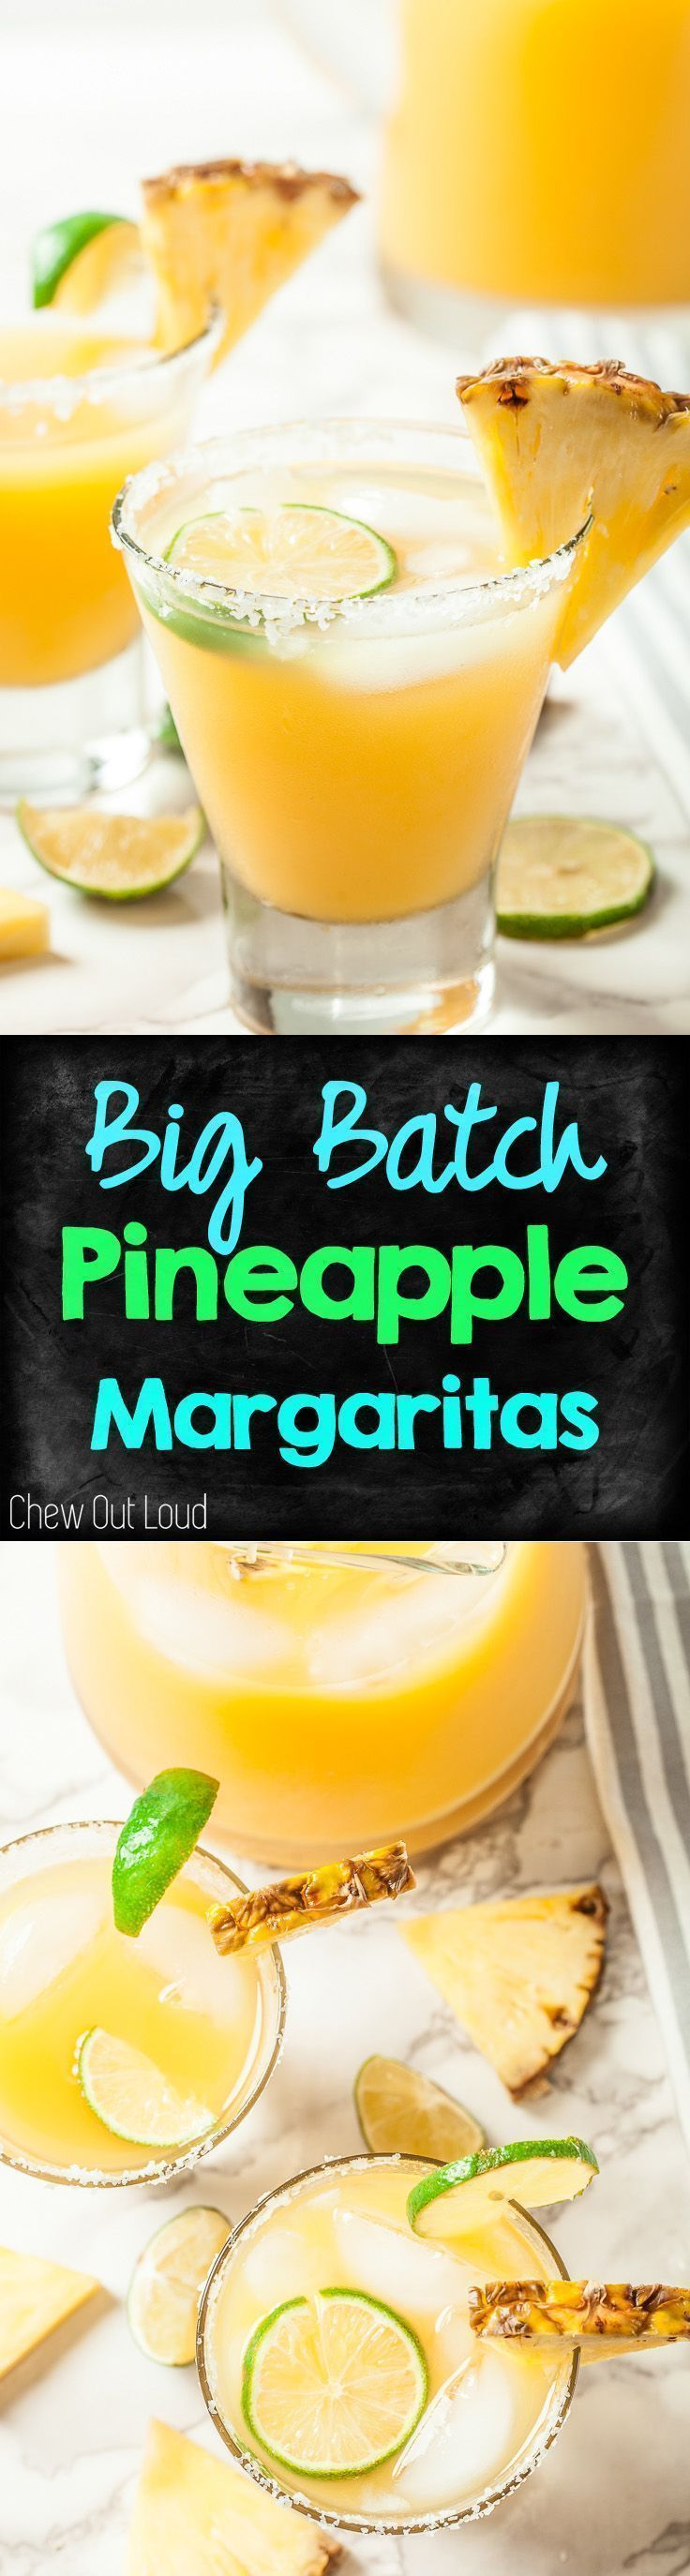 Big Batch Pineapple Margaritas Recipe - Chew Out Loud #henessydrinksrecipes